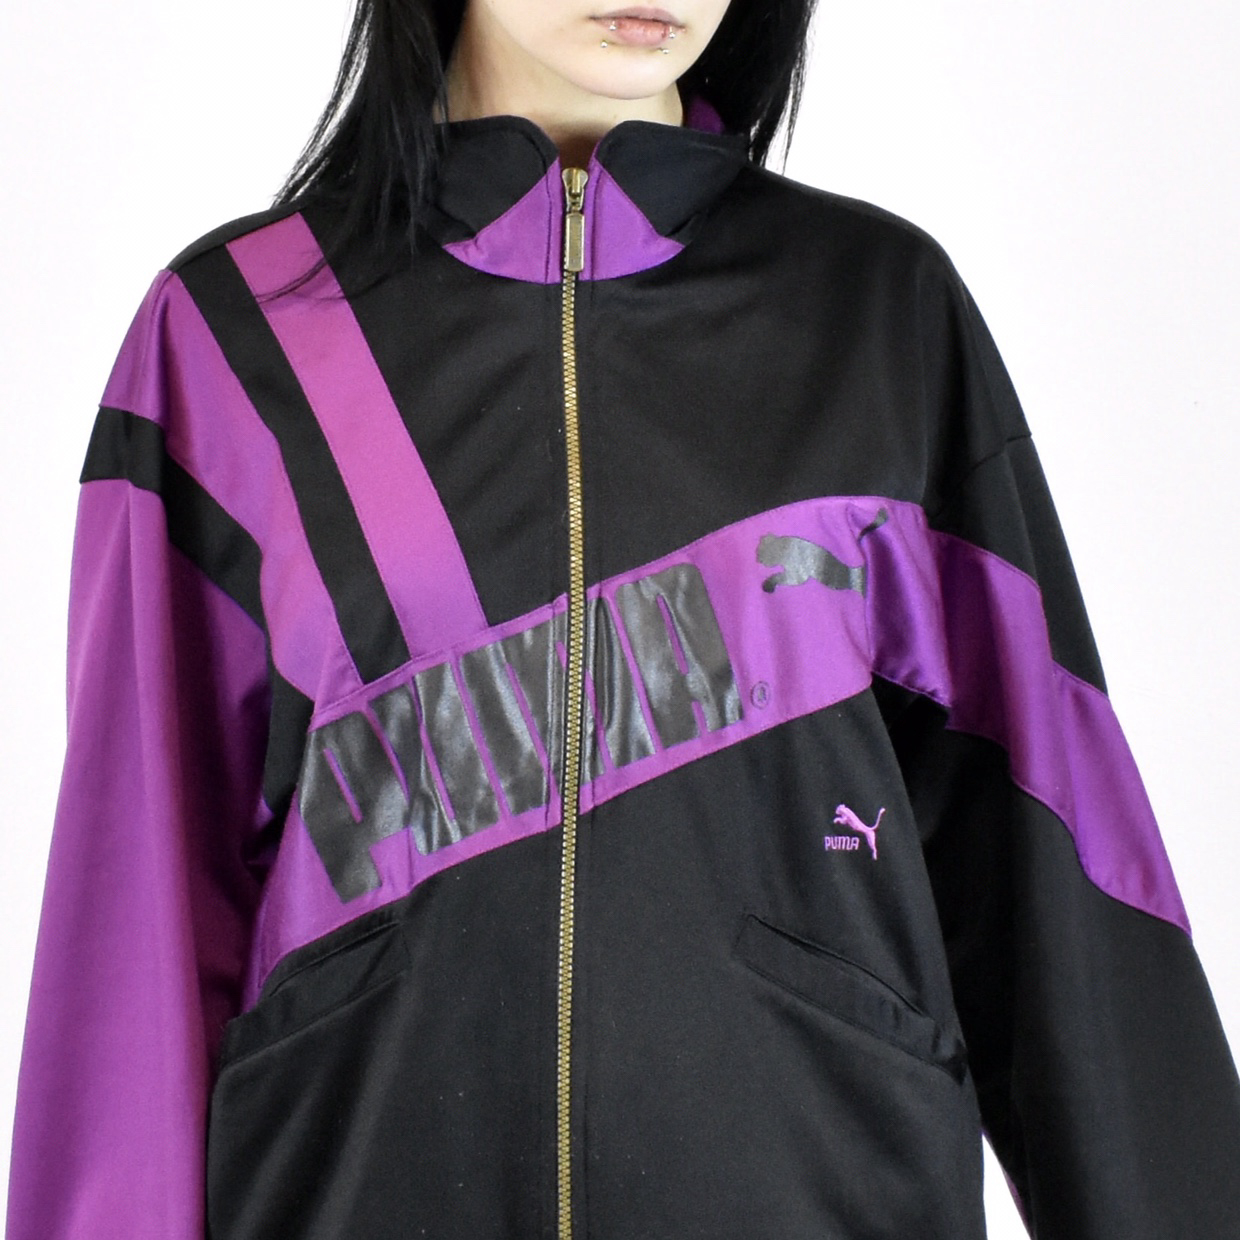 Unisex Vintage Puma track jacket in black and purple size L